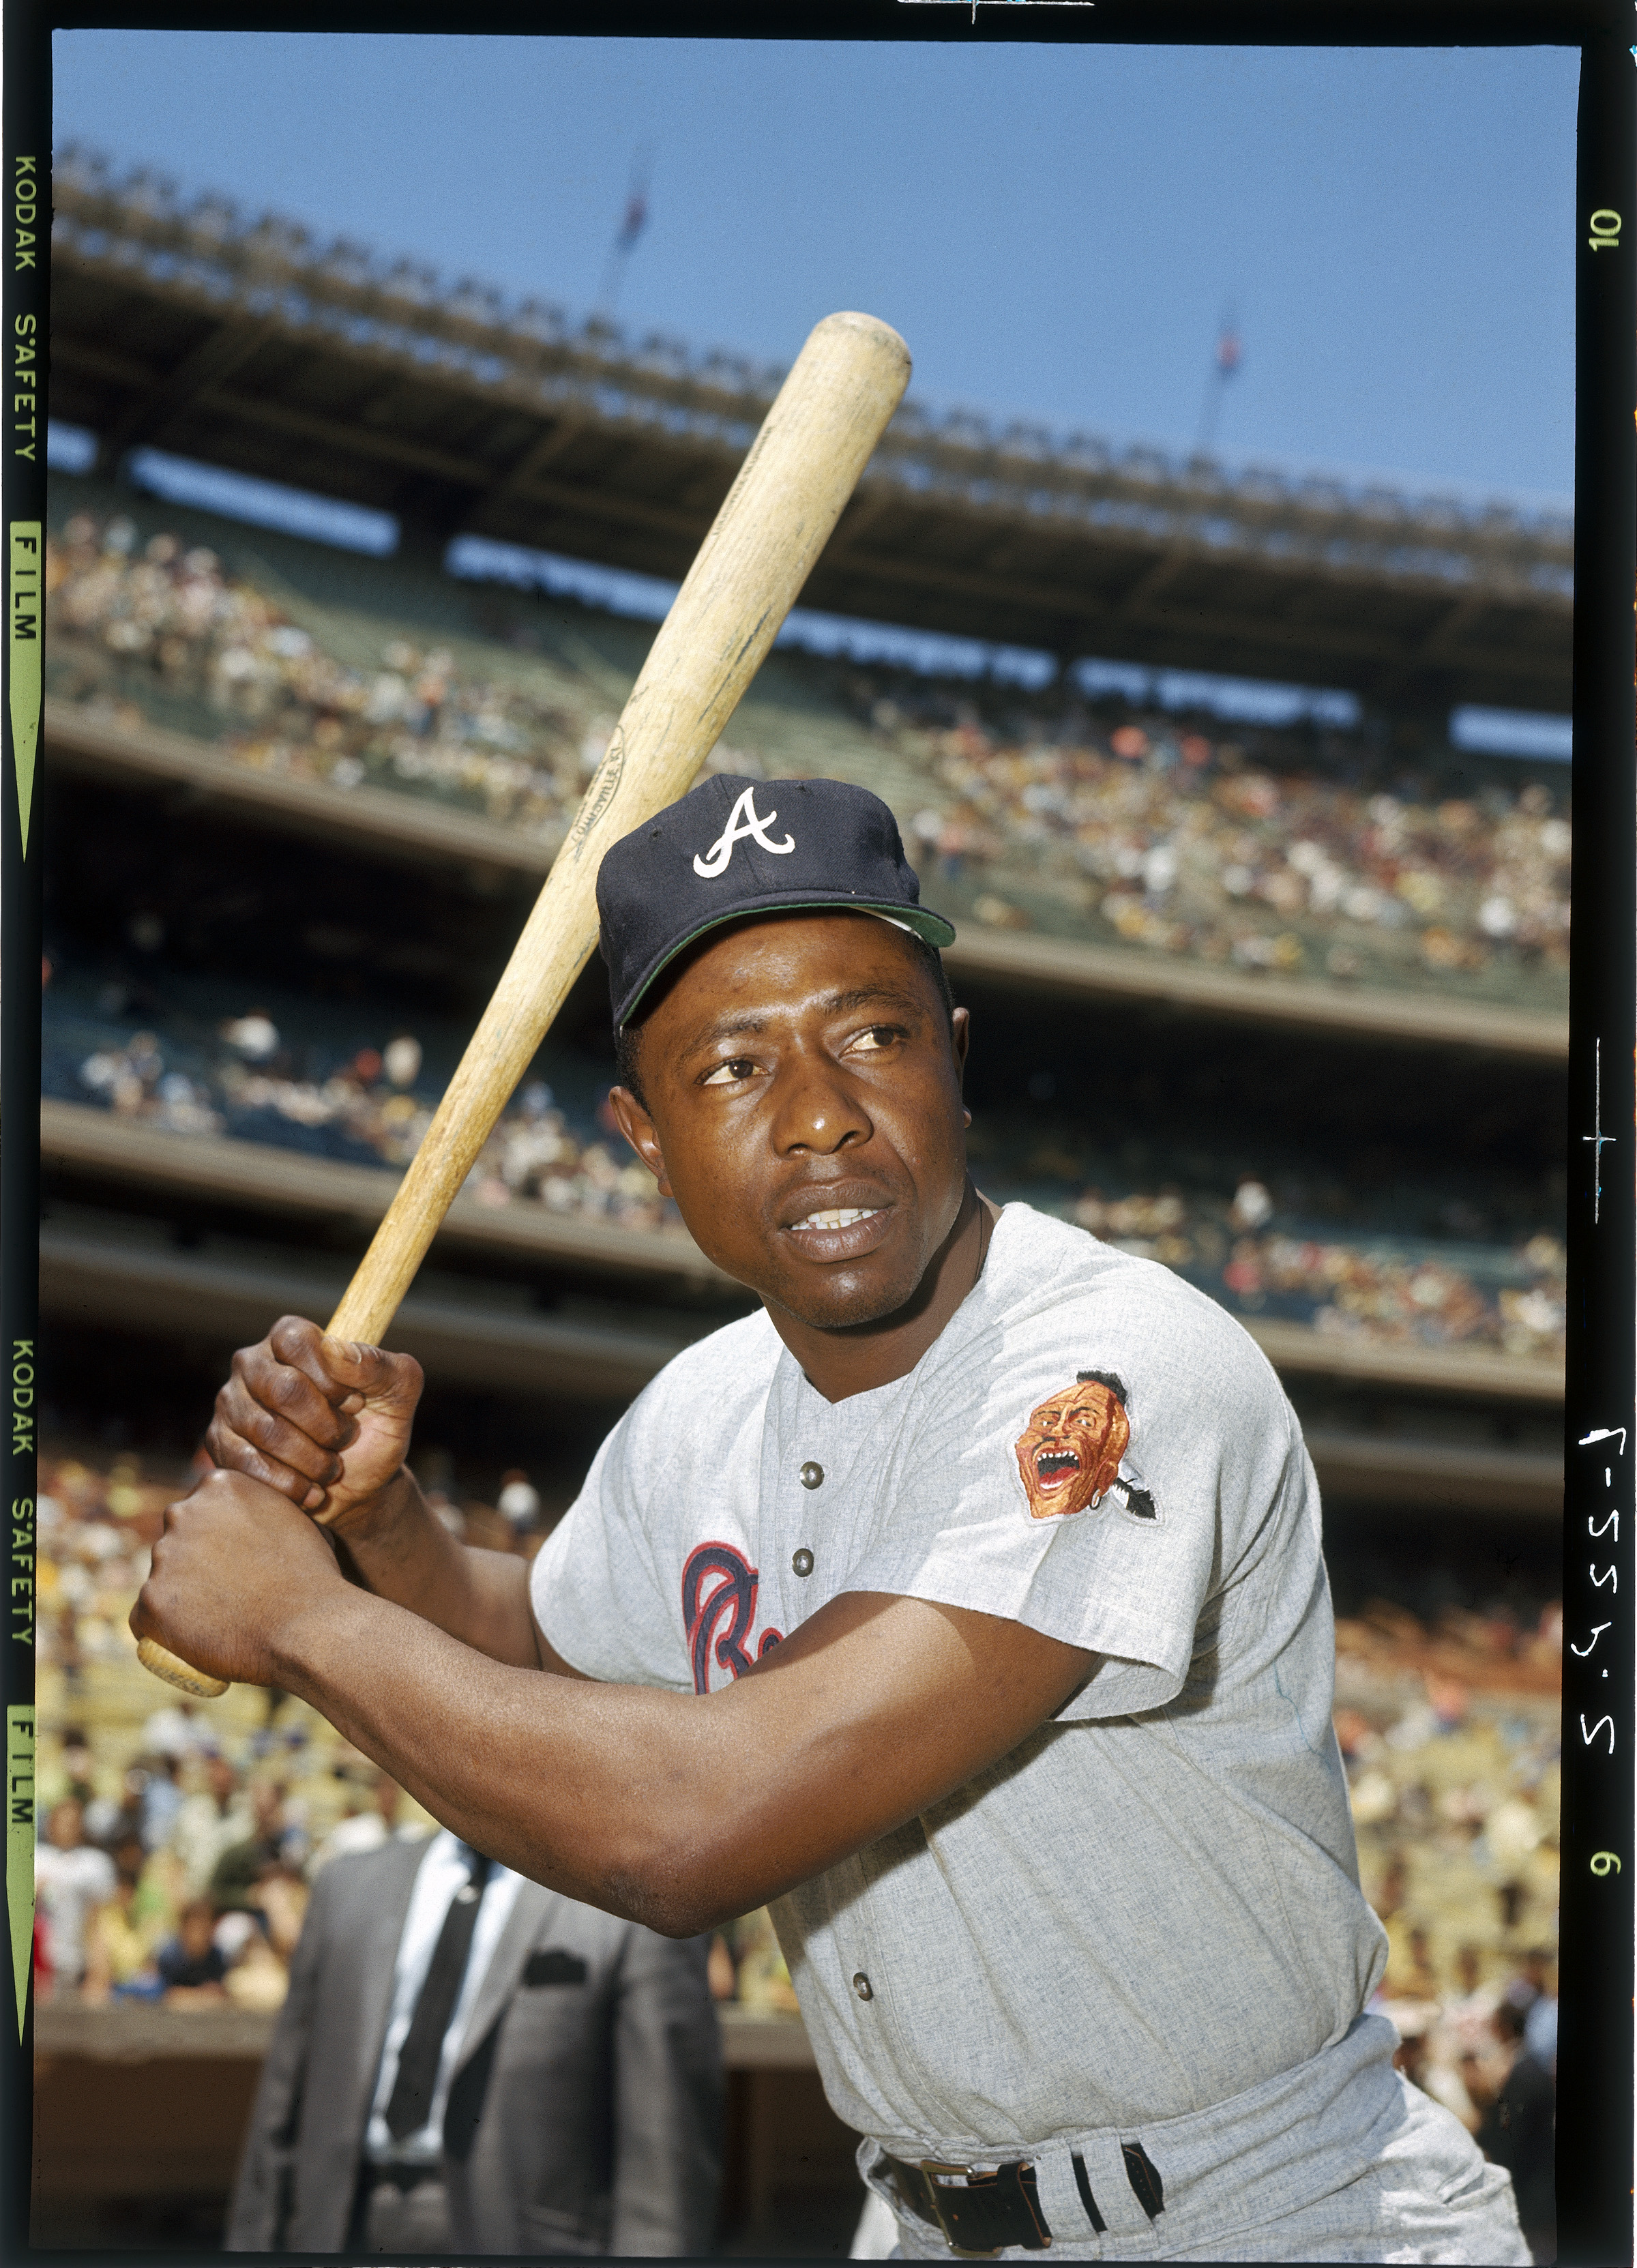 Hank Aaron, baseball legend and former home run king, dies at 86